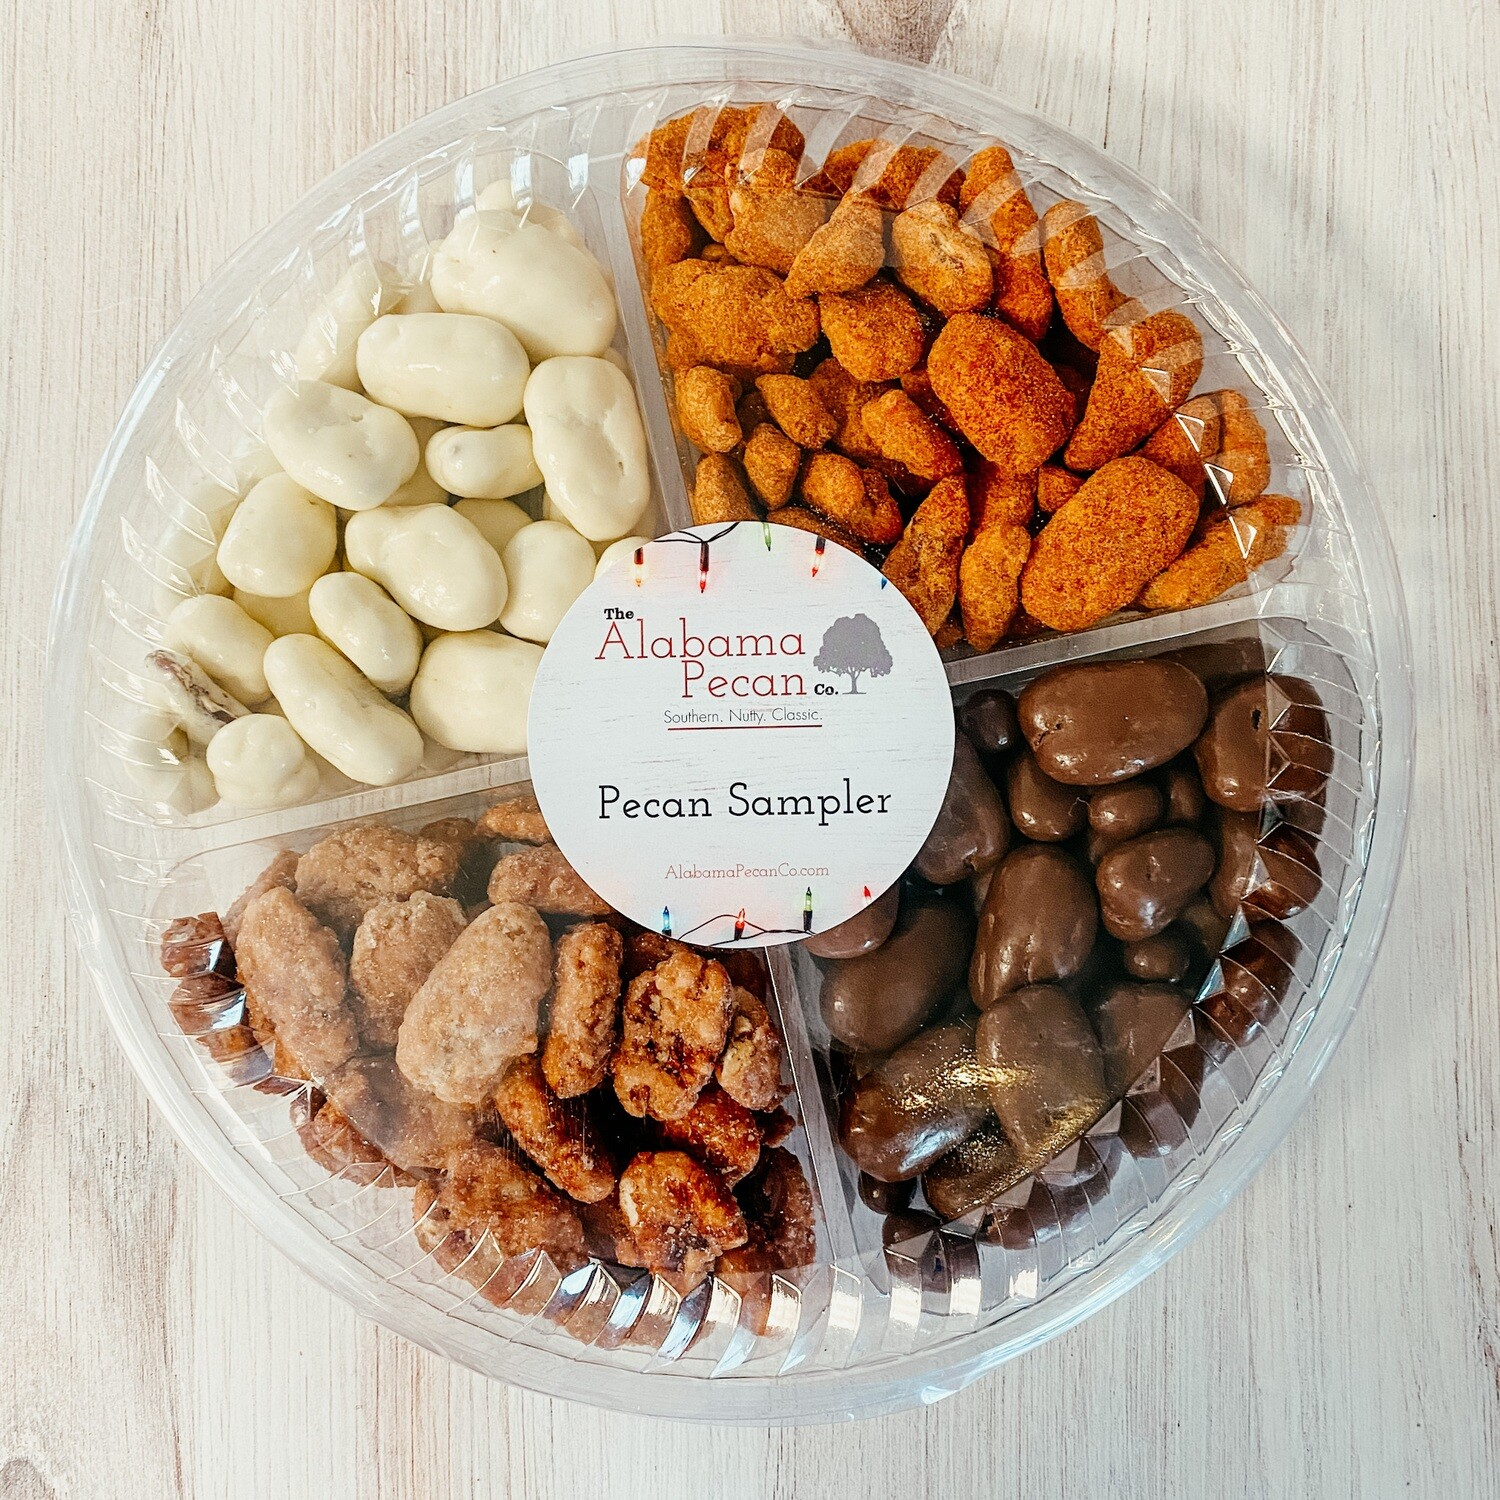 Candy & Chocolate Pecan Sampler